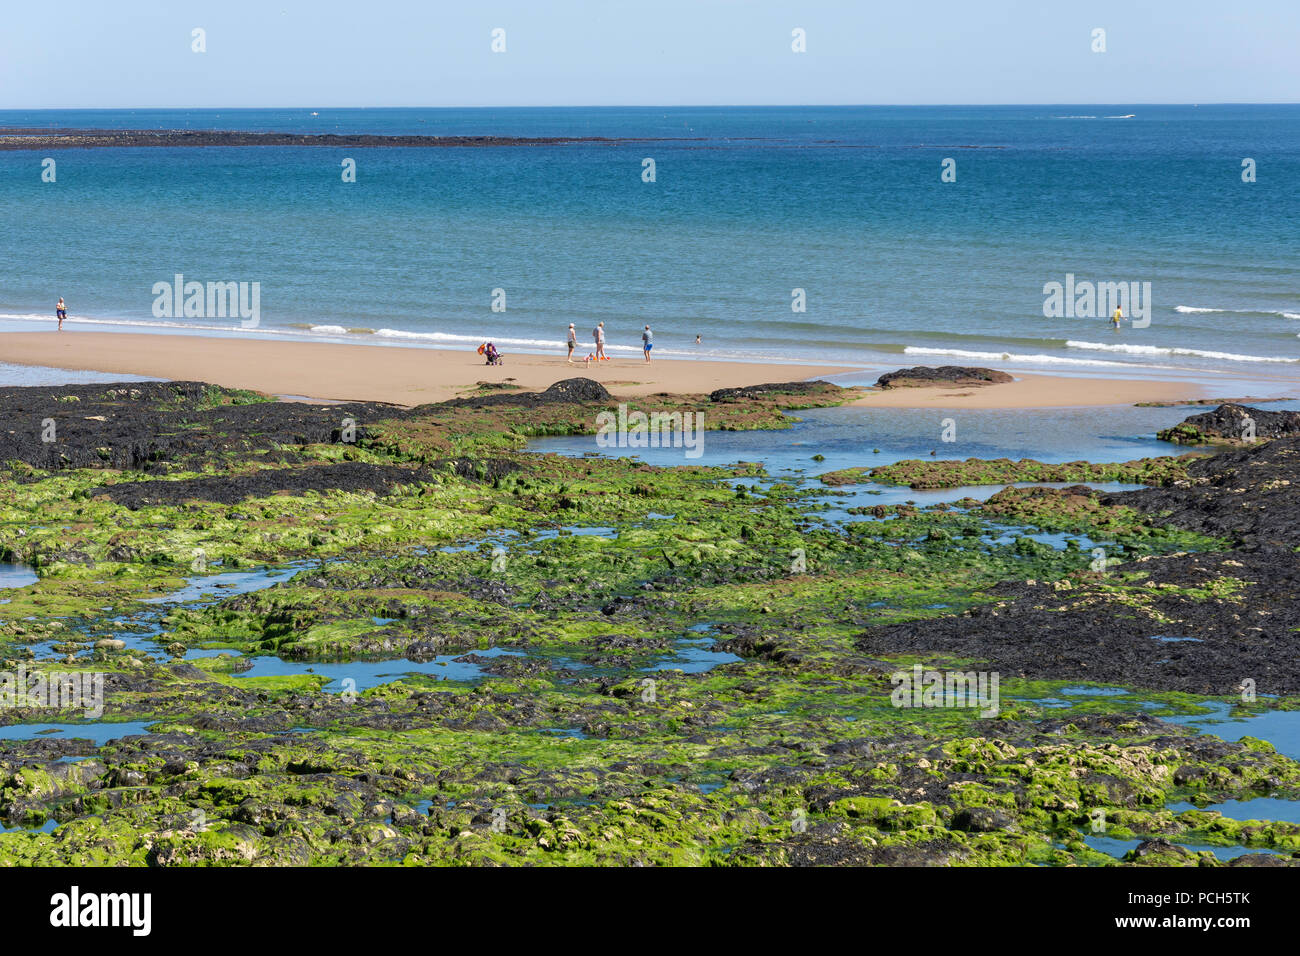 Parson's Rocks and Seaburn Beach, Seaburn, Sunderland, Tyne and Wear, England, United Kingdom - Stock Image